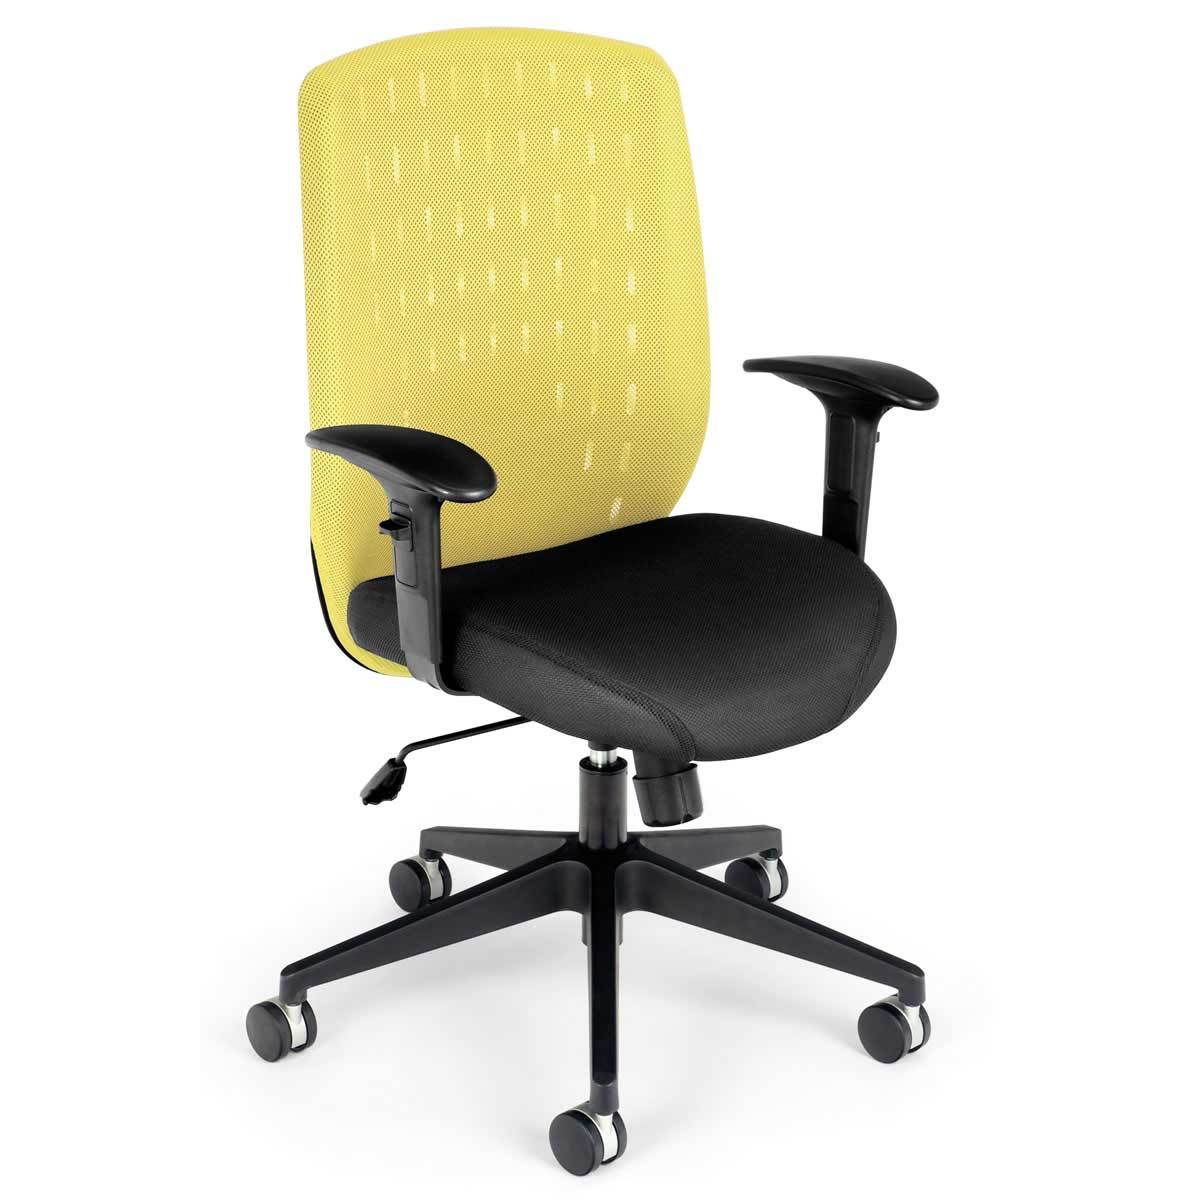 Ofm vision guest chair 3 large